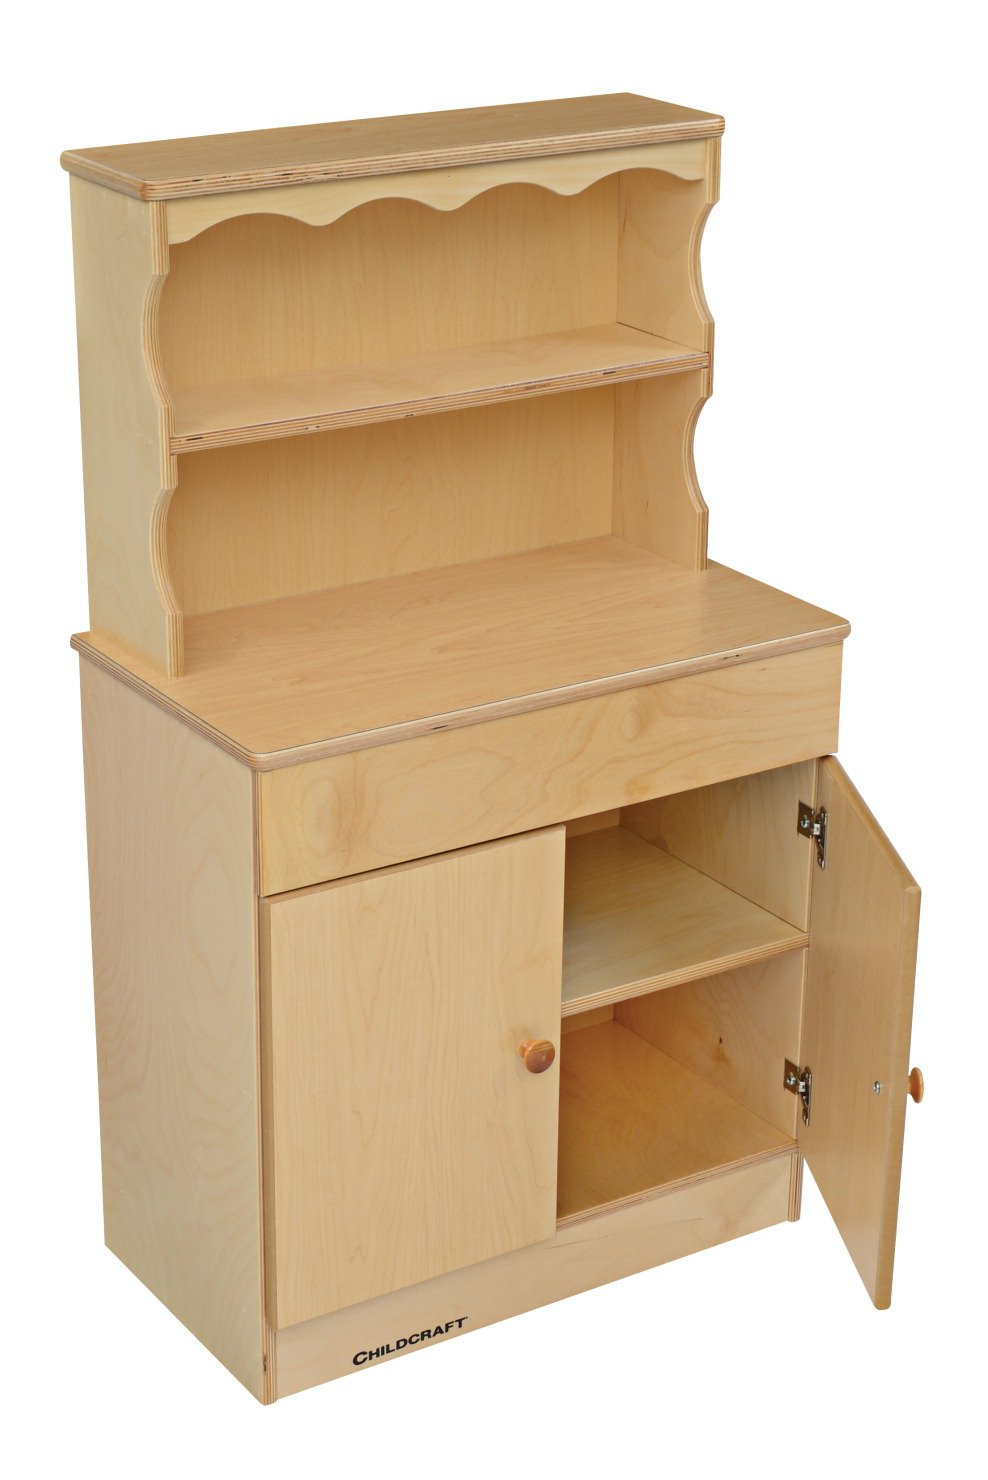 Childcraft 1386210 Traditional Dutch Cabinet, Plastic Laminate Top, 41'' x 13-5/8'' x 23-7/8'', Natural Wood Tone